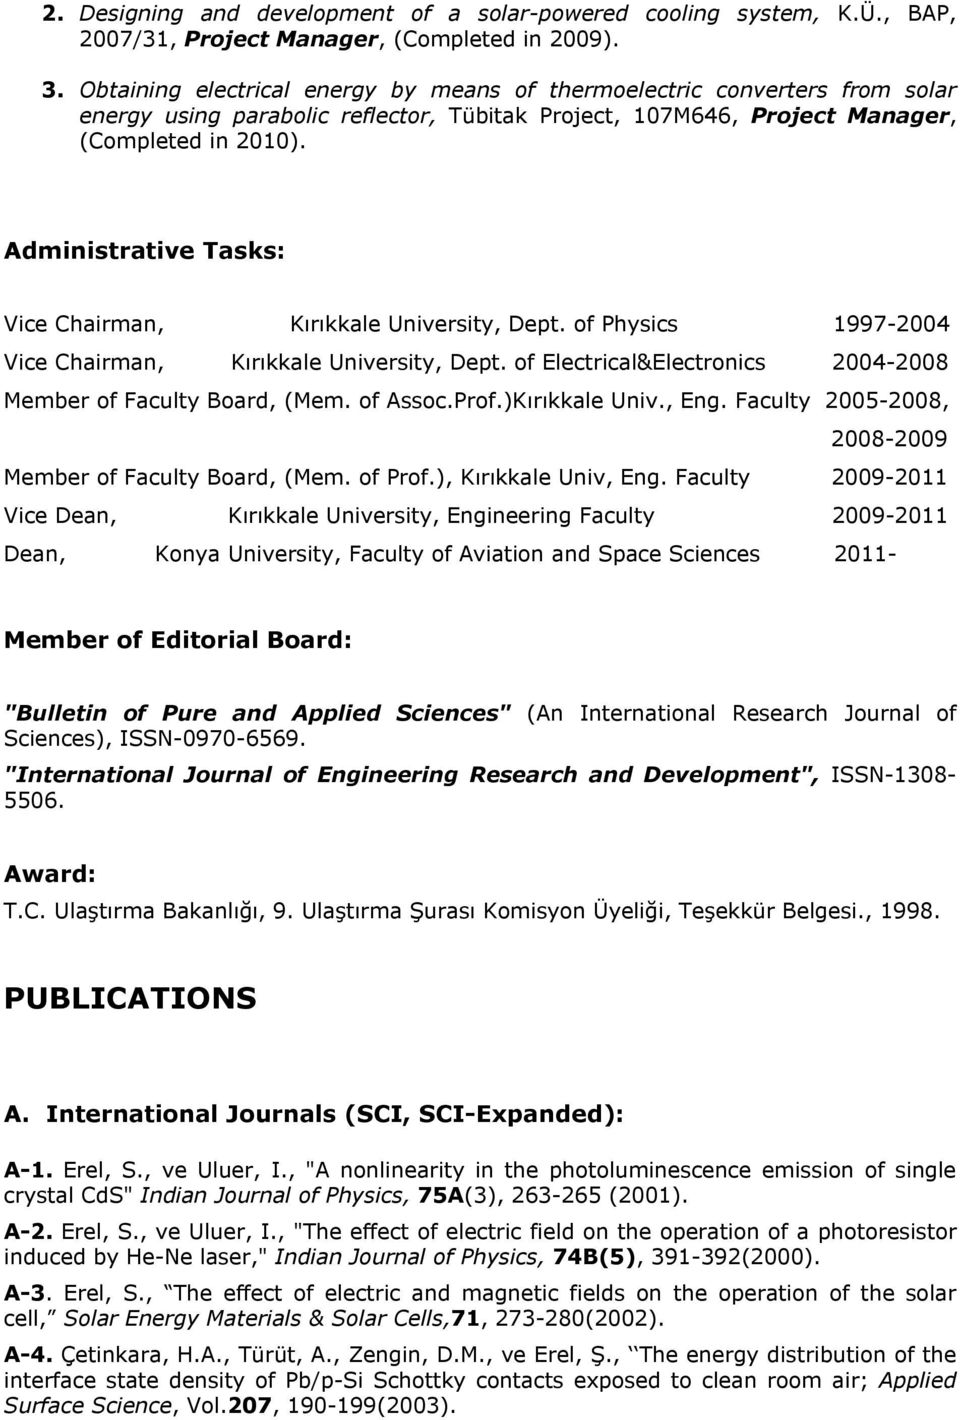 Administrative Tasks: Vice Chairman, Kırıkkale University, Dept. of Physics 1997-2004 Vice Chairman, Kırıkkale University, Dept. of Electrical&Electronics 2004-2008 Member of Faculty Board, (Mem.